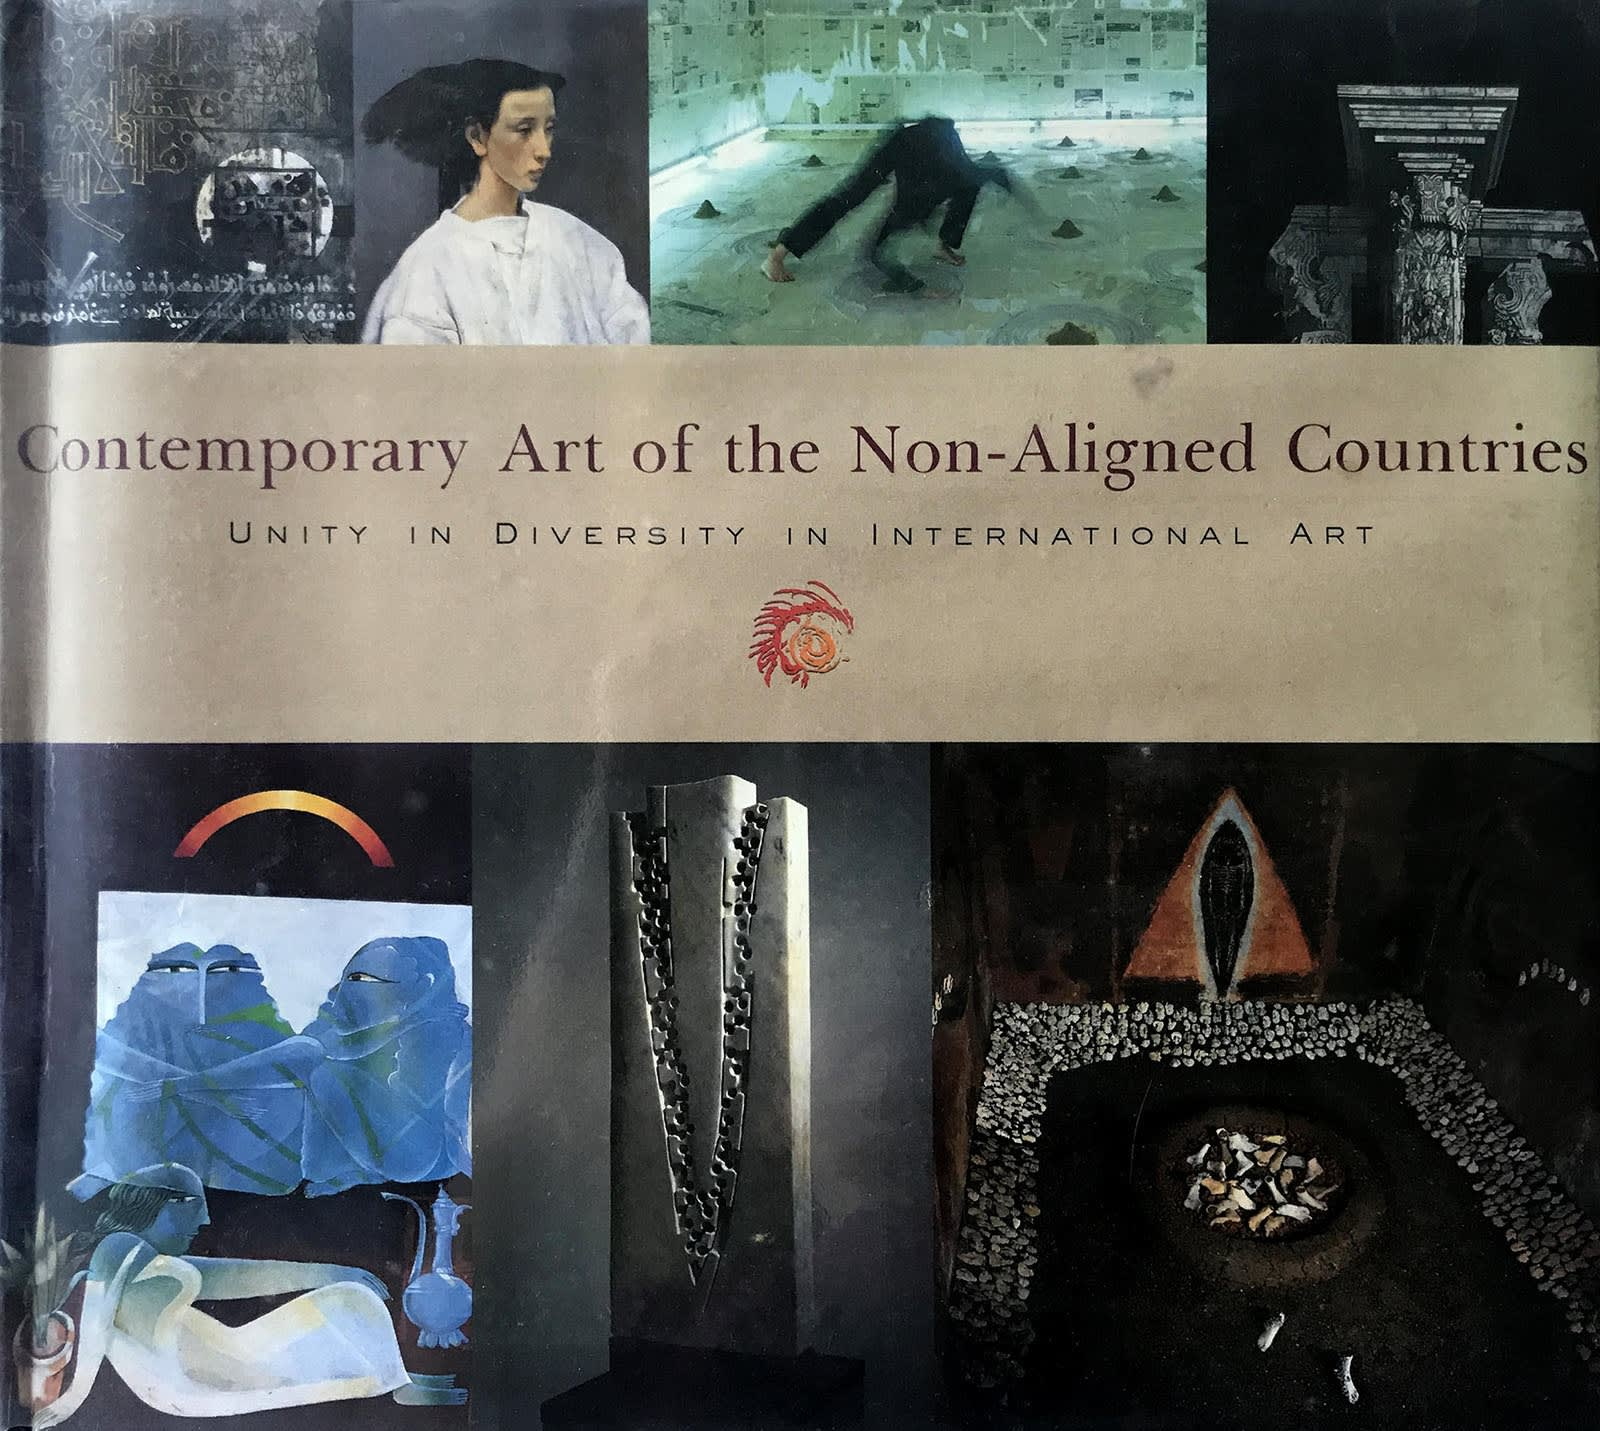 Contemporary Art of the Non-Aligned Countries